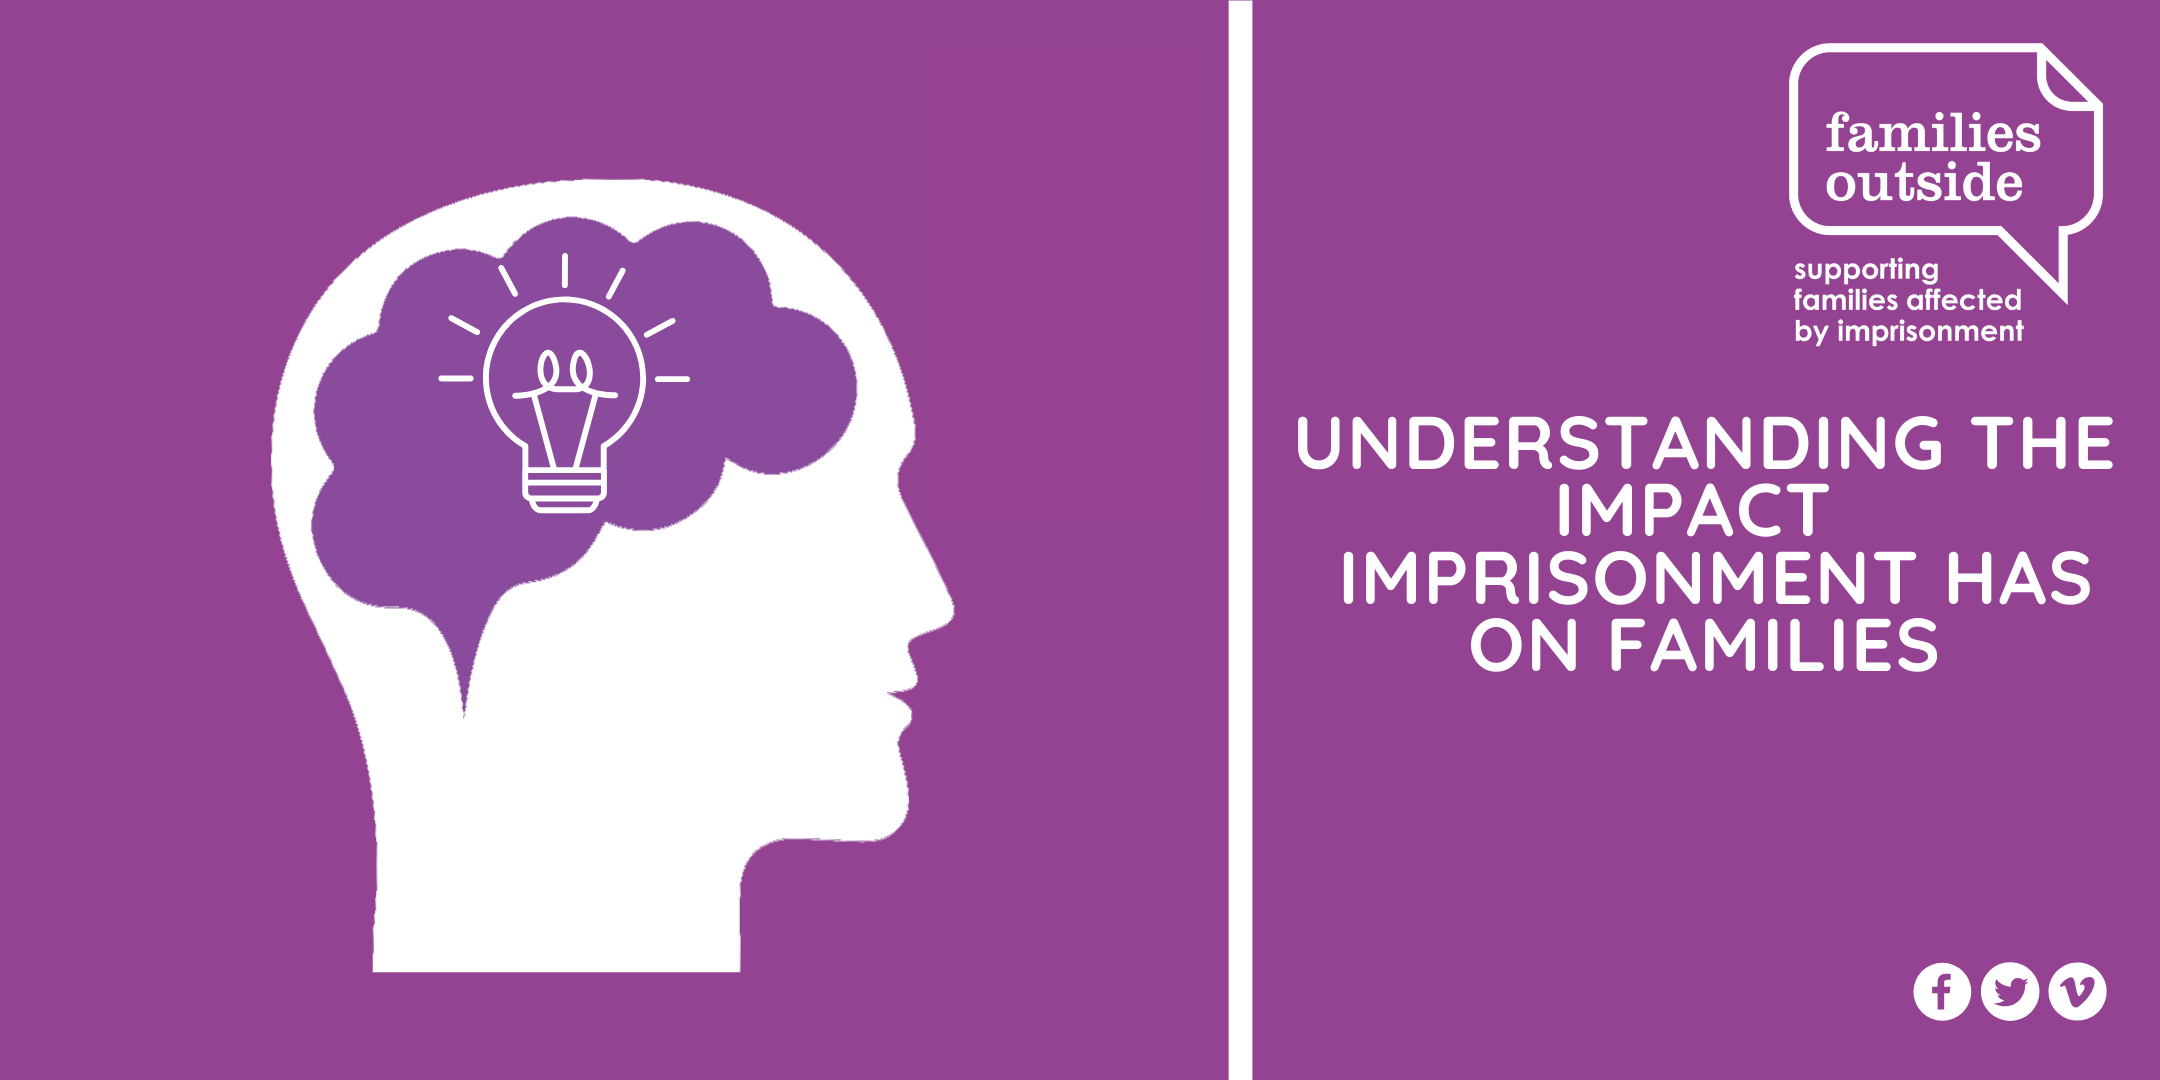 Understanding the impact imprisonment has on families - October